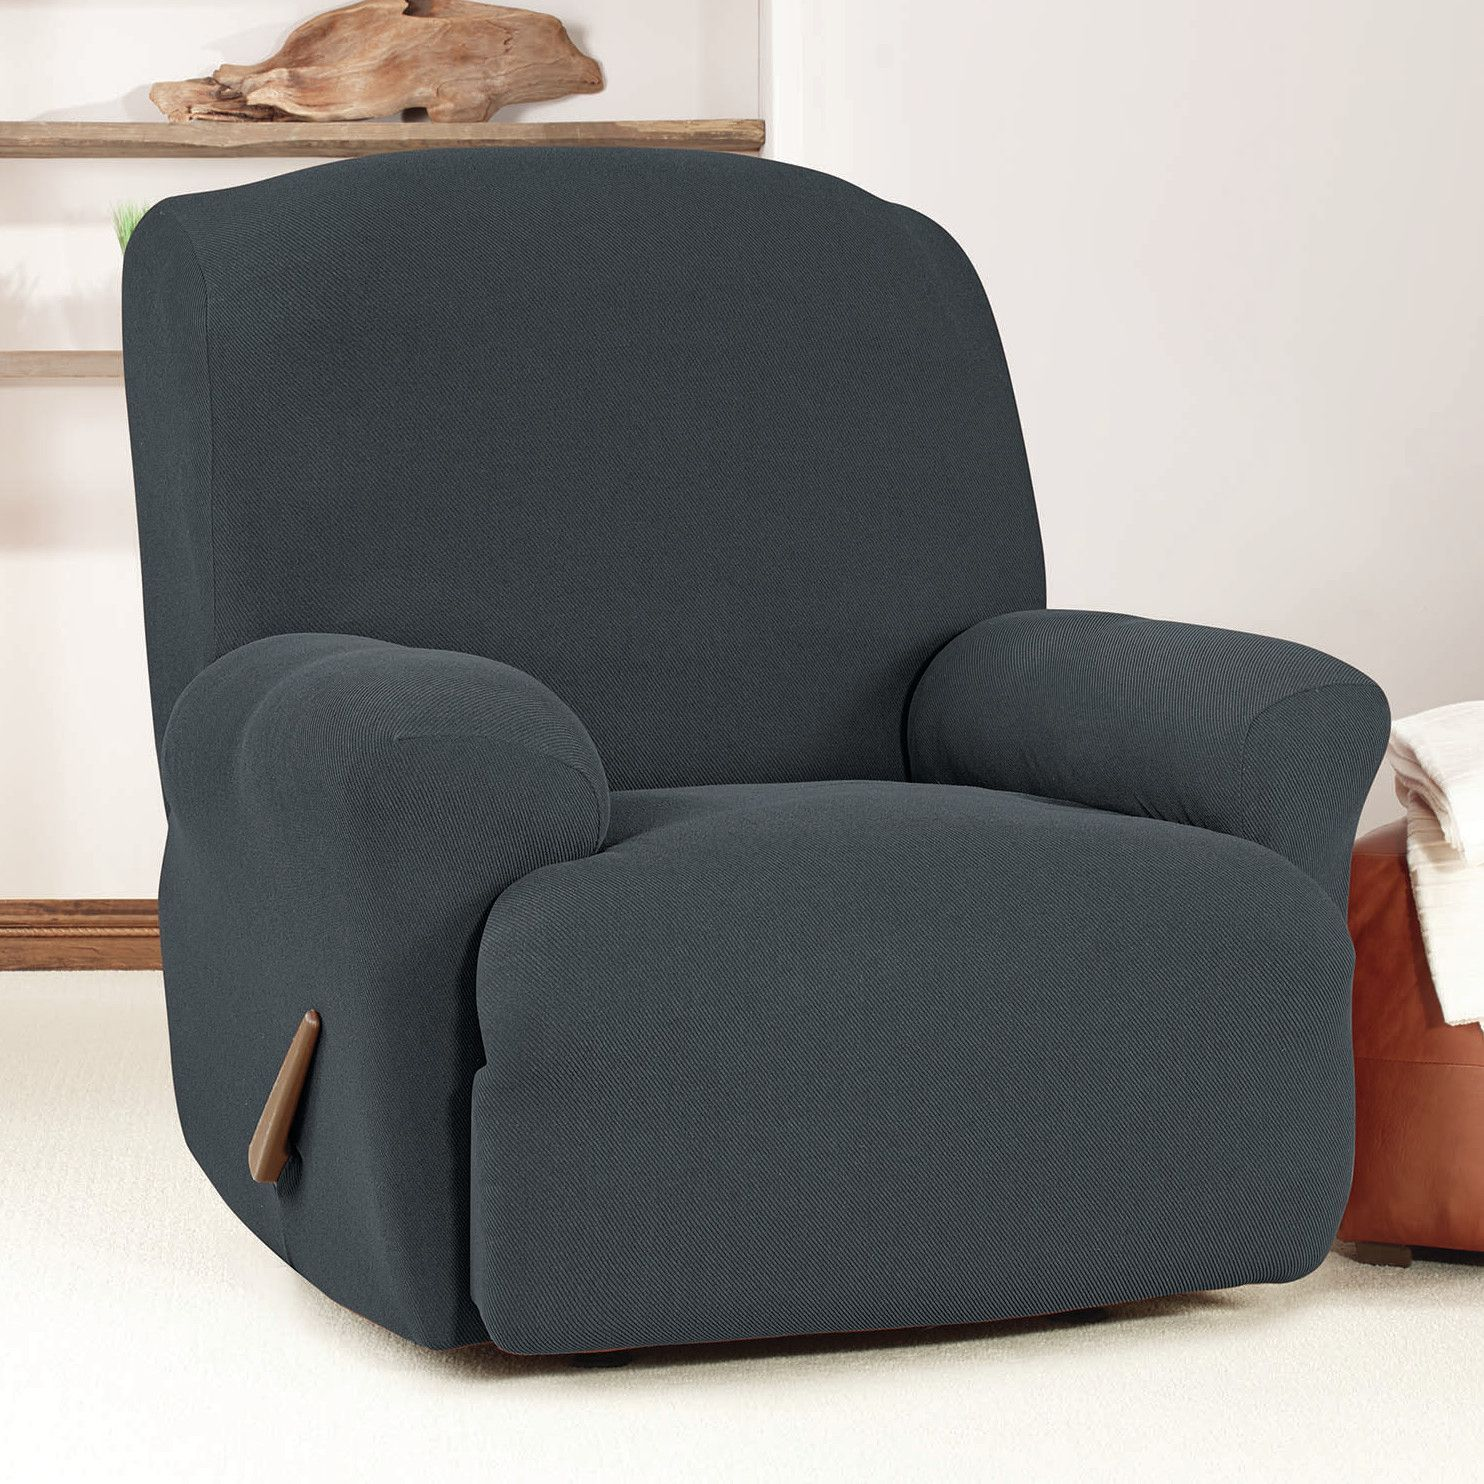 recliner product today overstock slipcovers garden recliners stretch free for slipcover shipping floral bccb sensations home